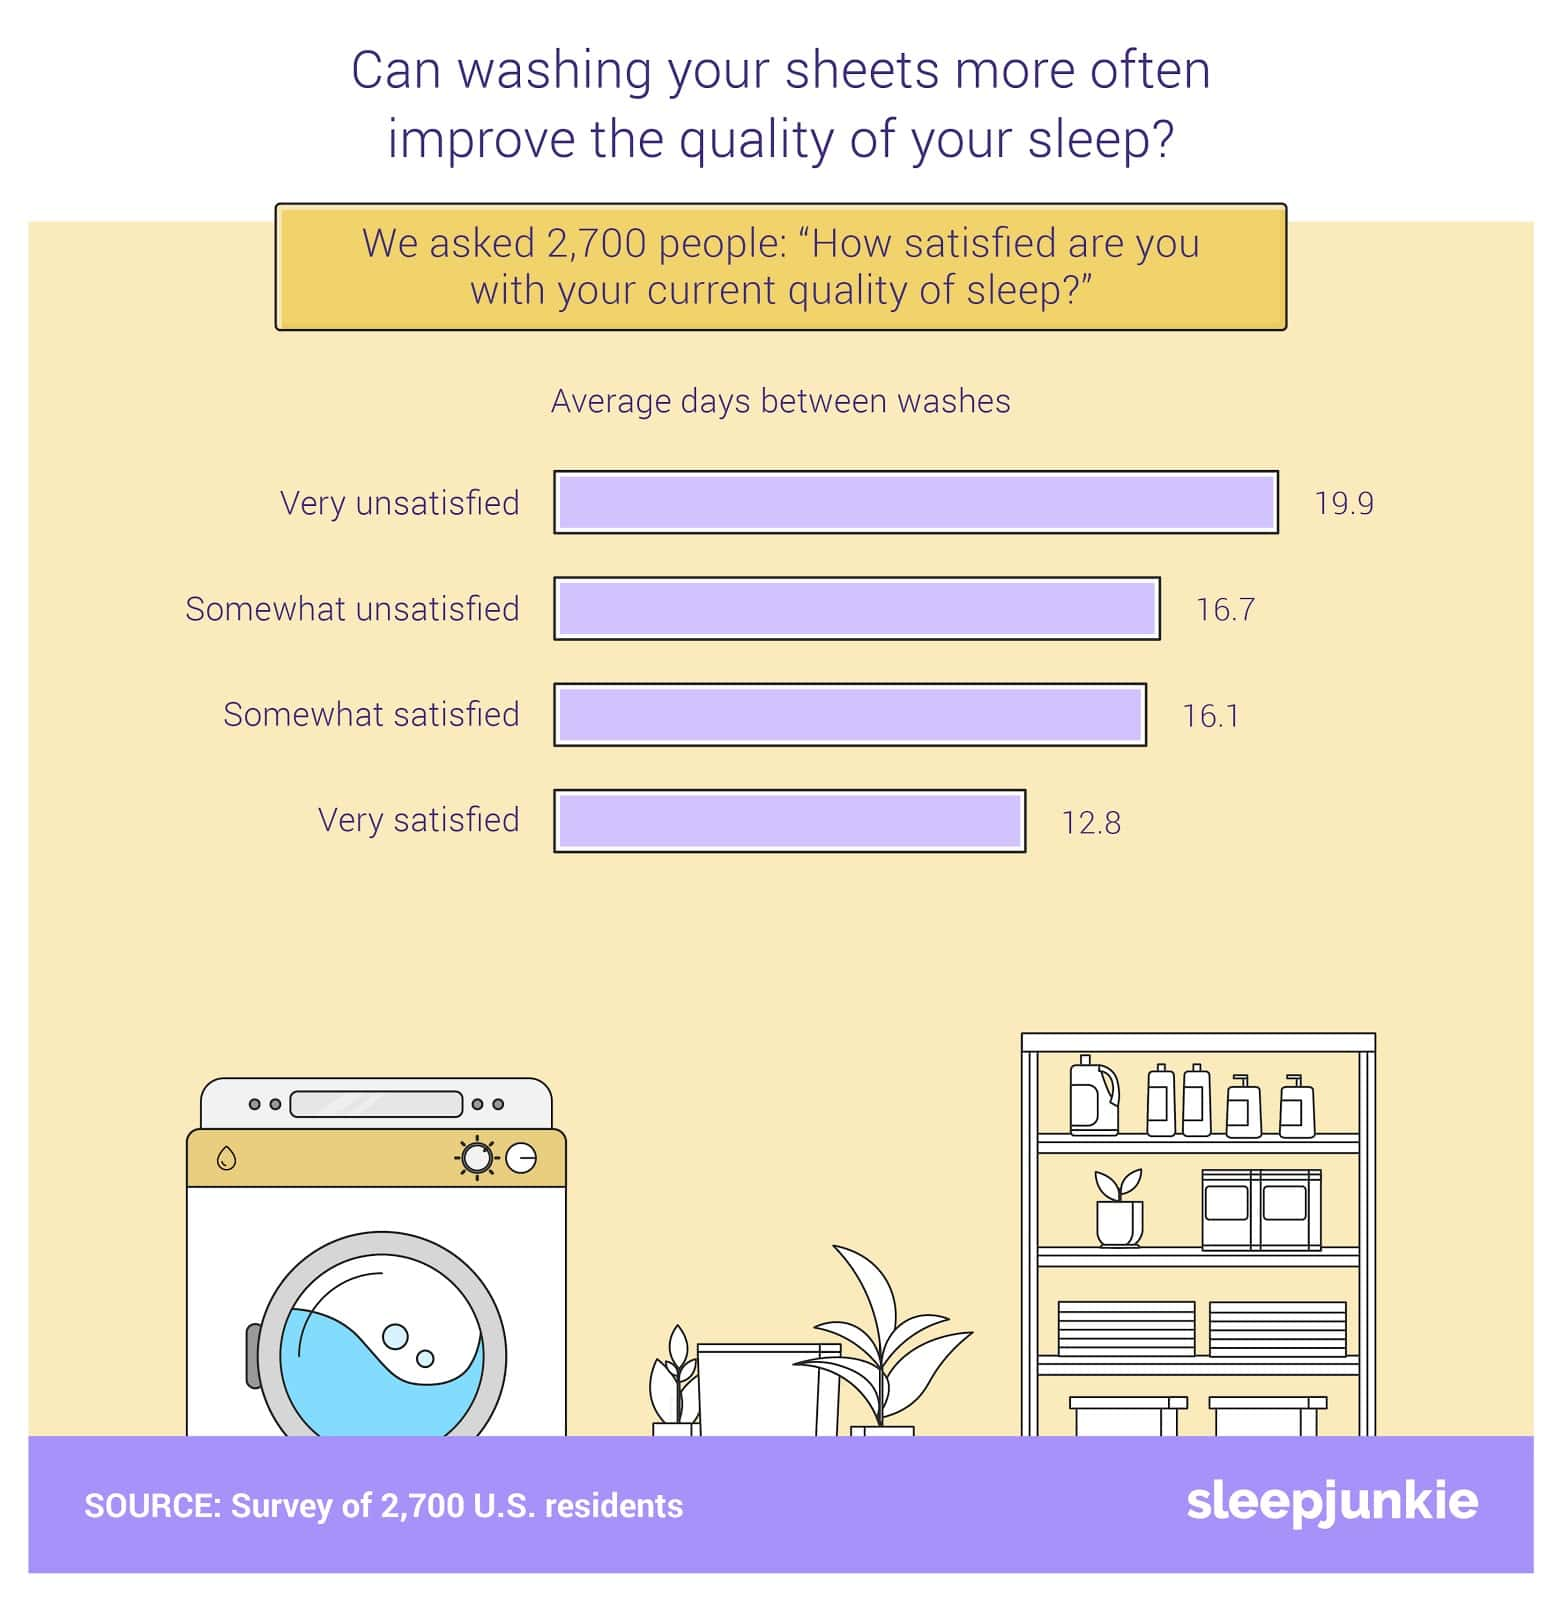 can washing sheets improve quality of sleep?